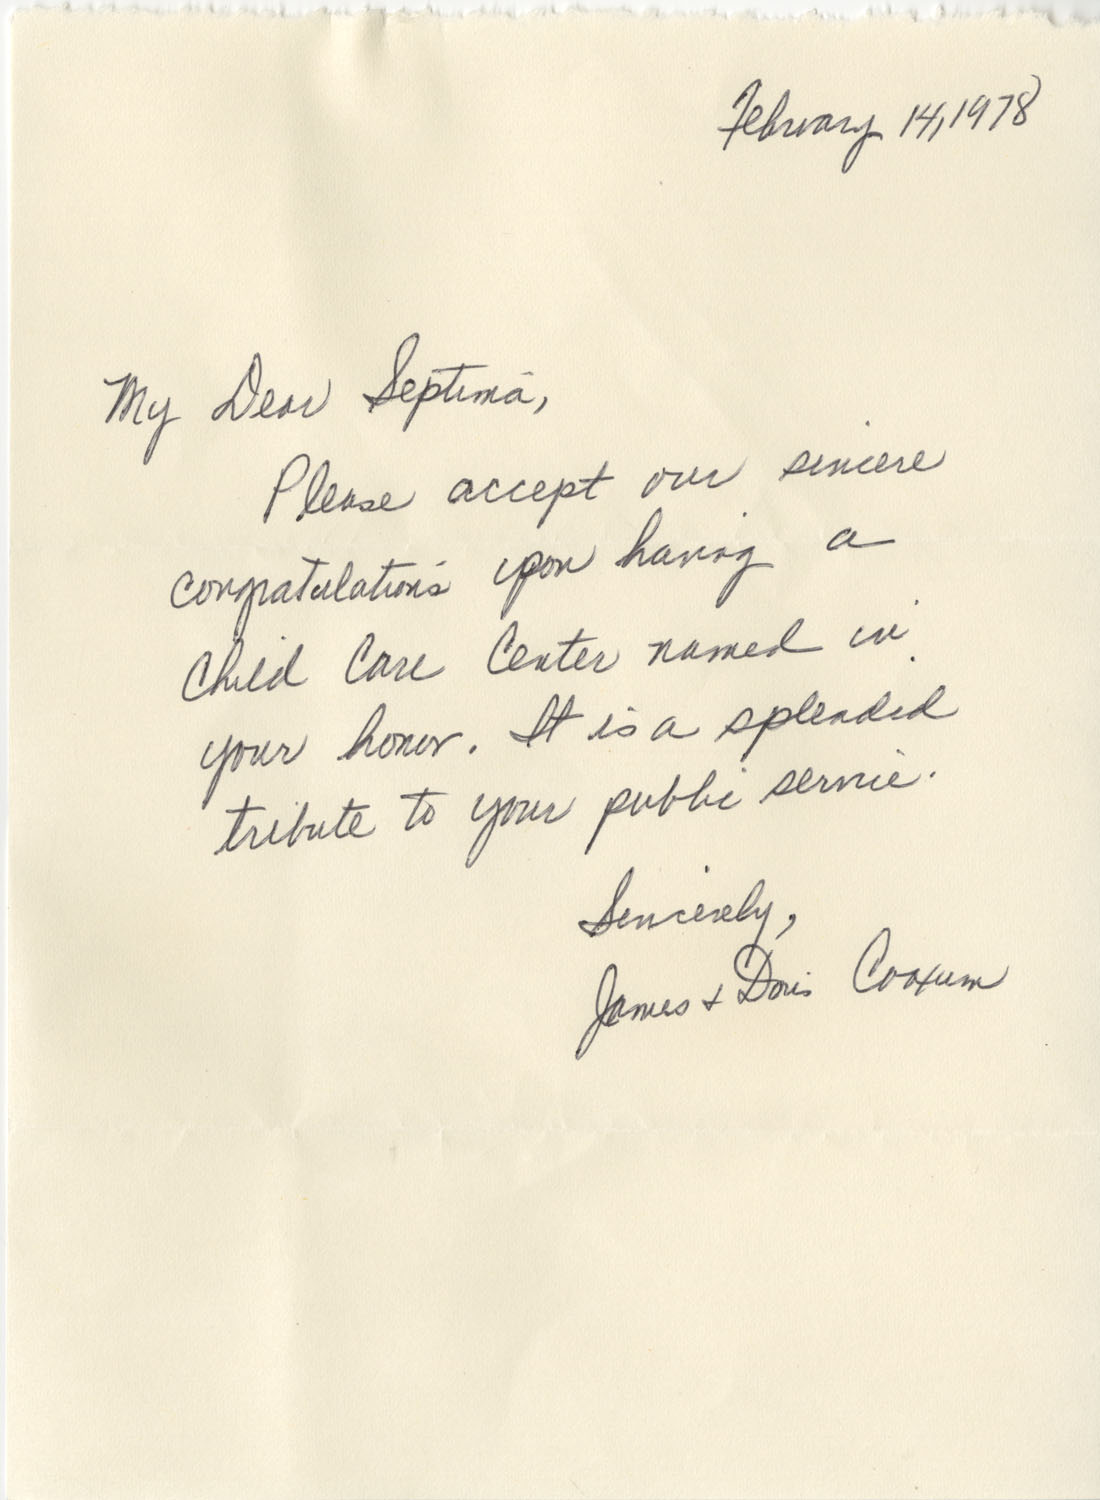 Letter from James and Doris Coaxum